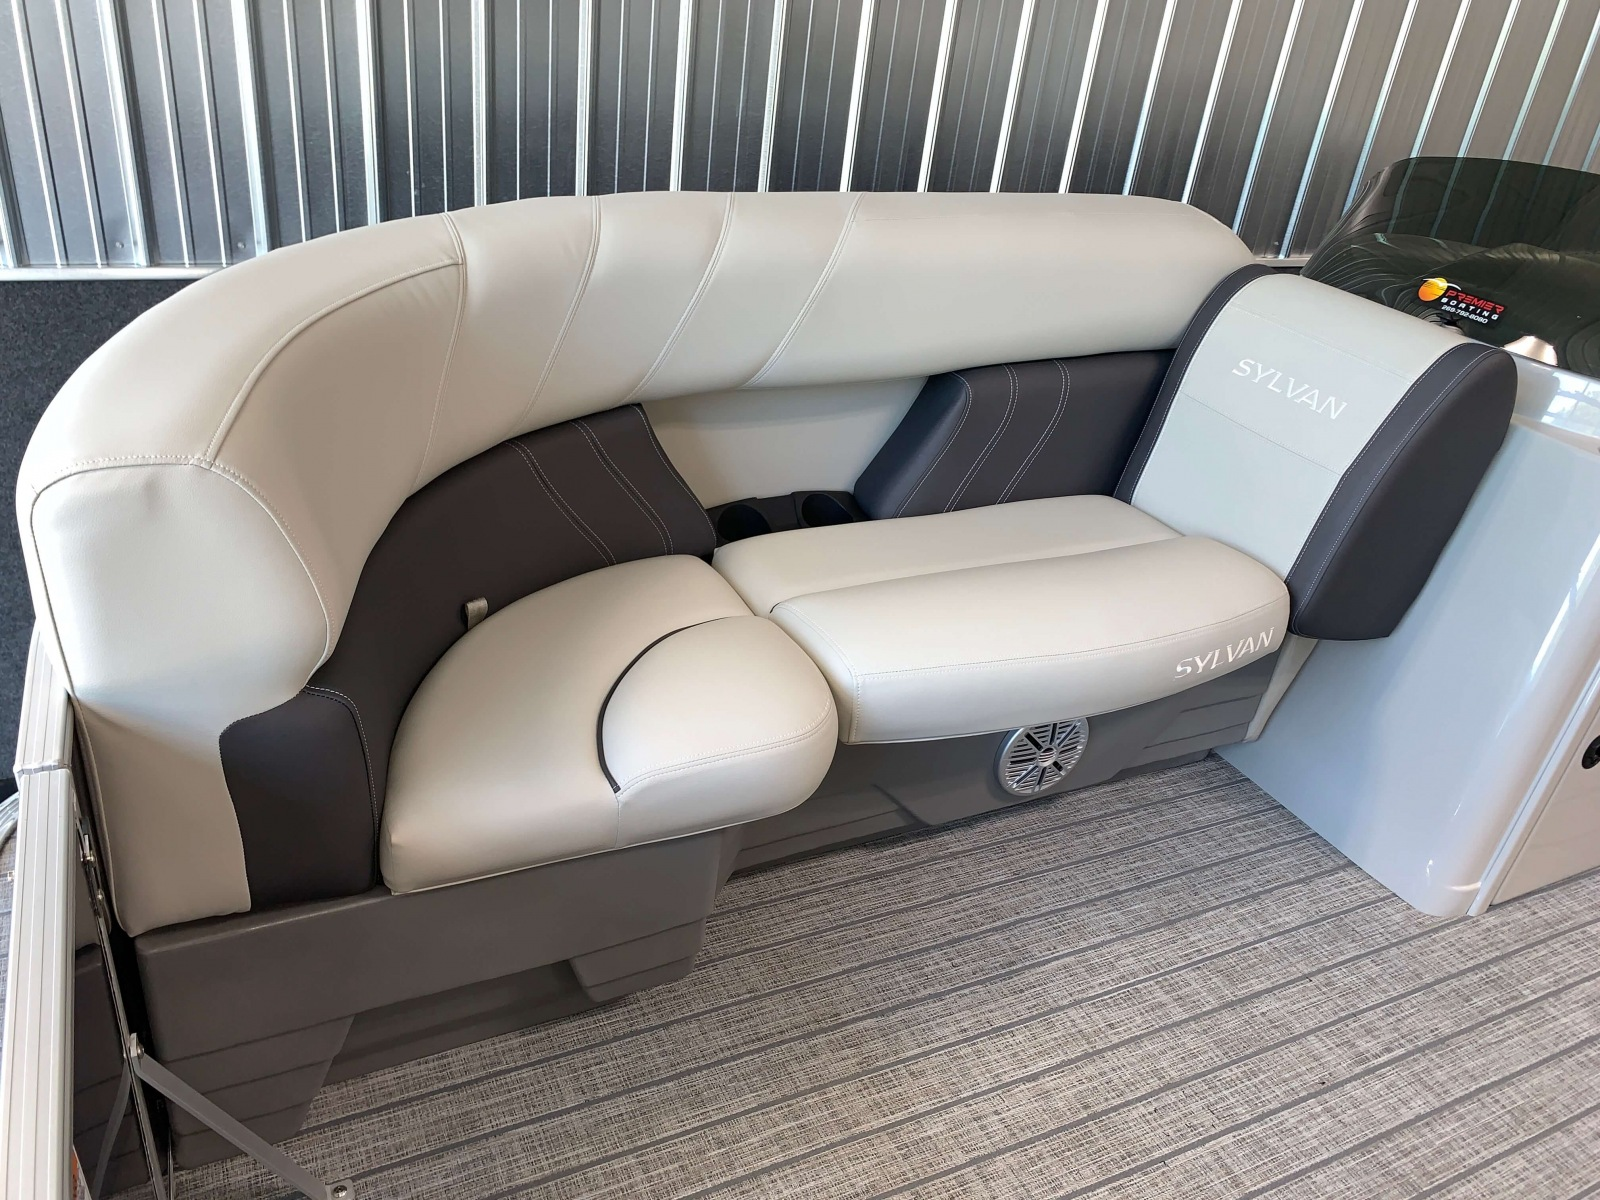 Rotocast Seat Bases on a 2021 Sylvan Mirage 8520 Cruise Pontoon Boat